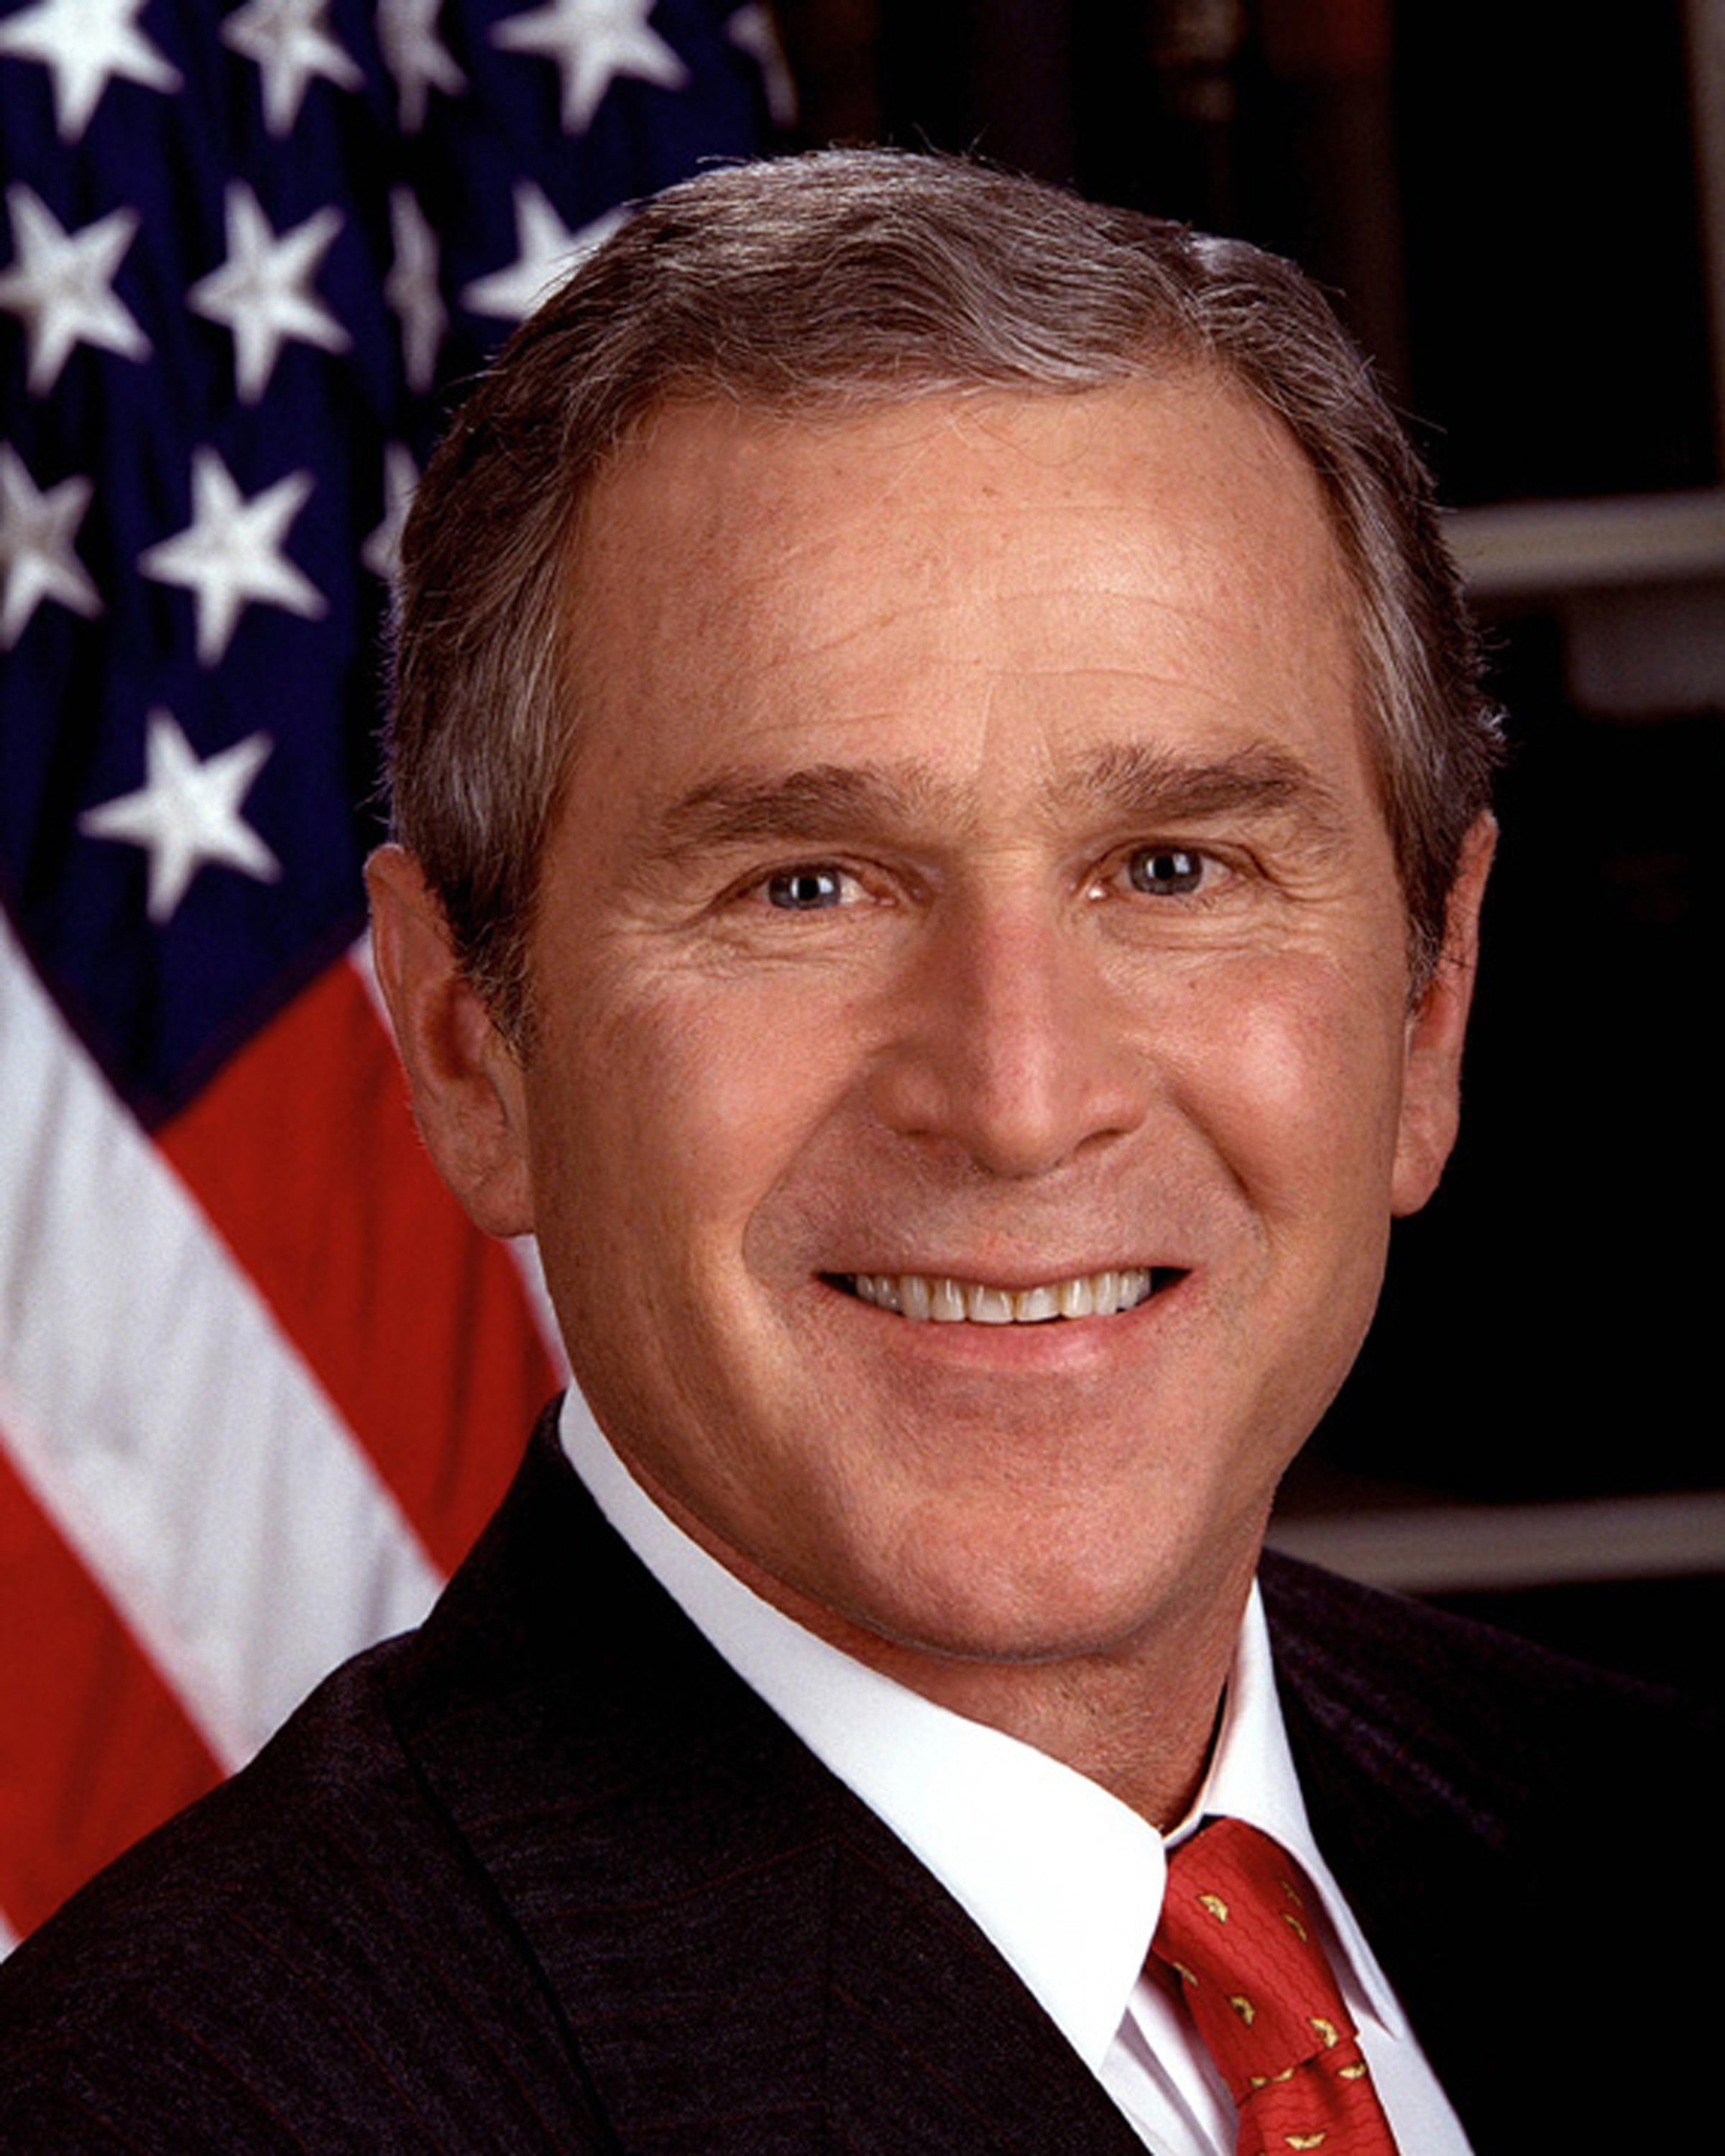 george w bush scrapbookpages blog george w bush former president of the united states of america